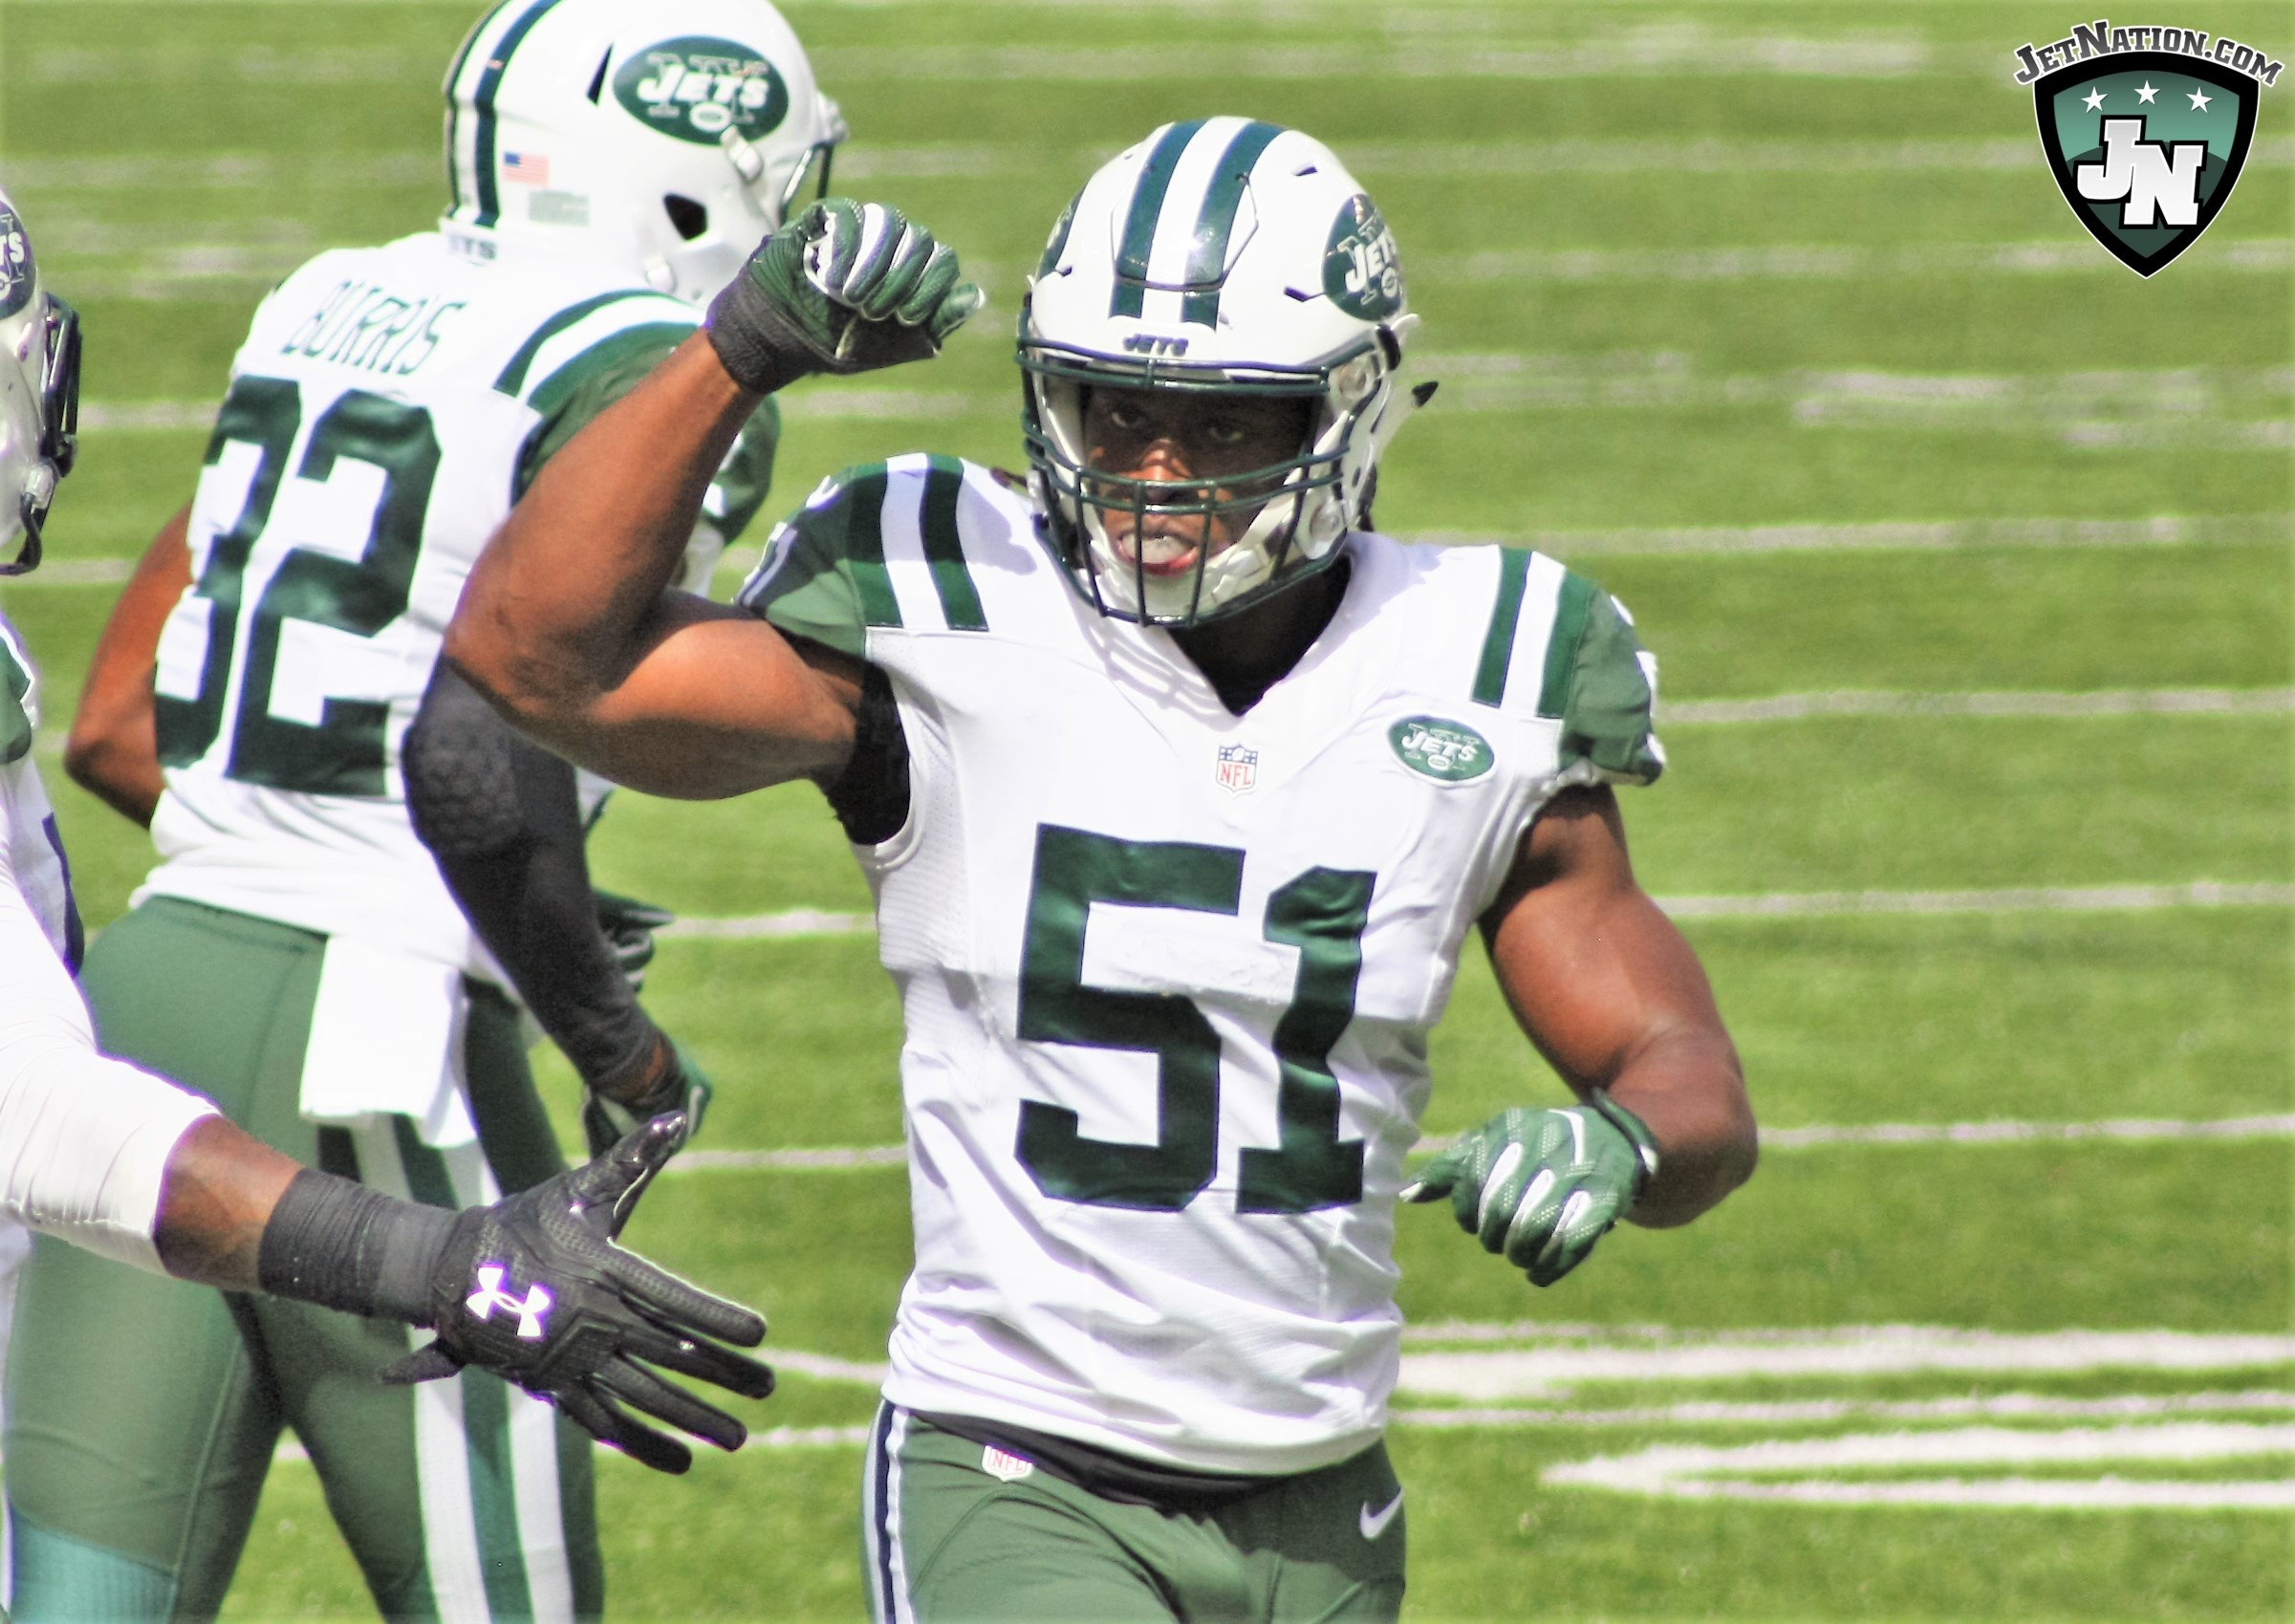 Jets add Troubled Tight End Seferian-Jenkins, Release LB Stanford